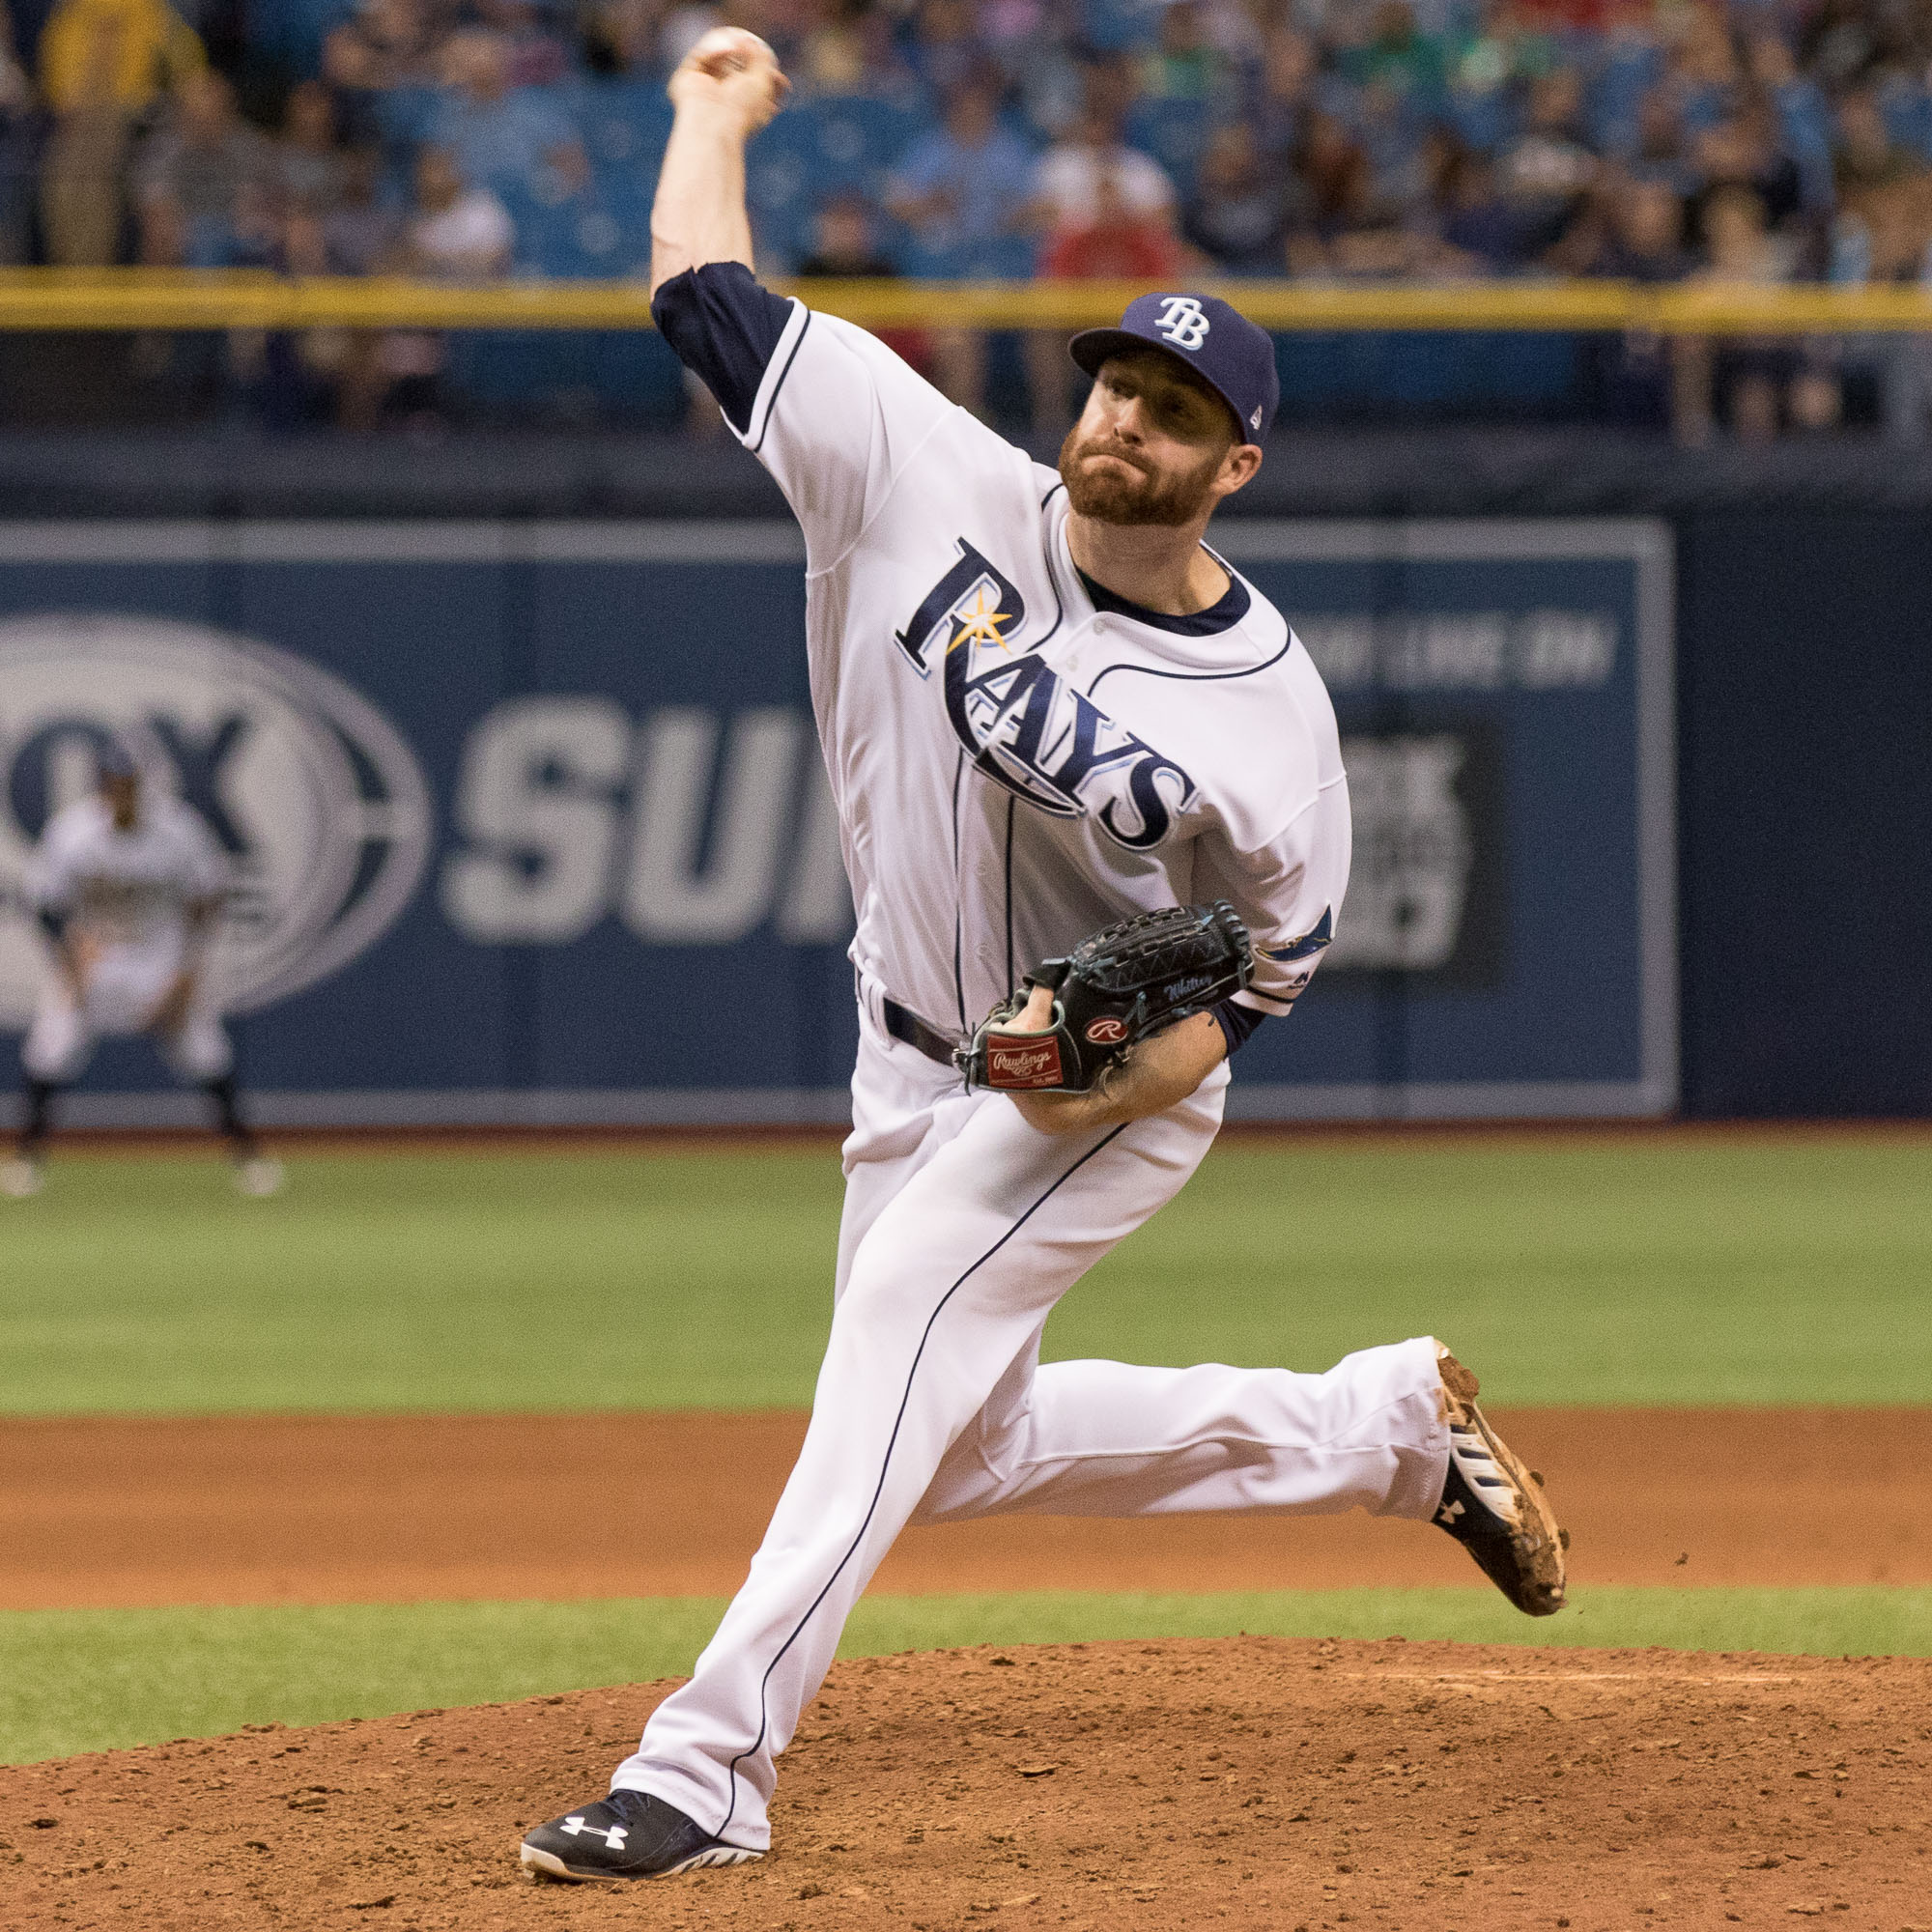 Chase Whitley finished the game for the Rays./STEVEN MUNCIE